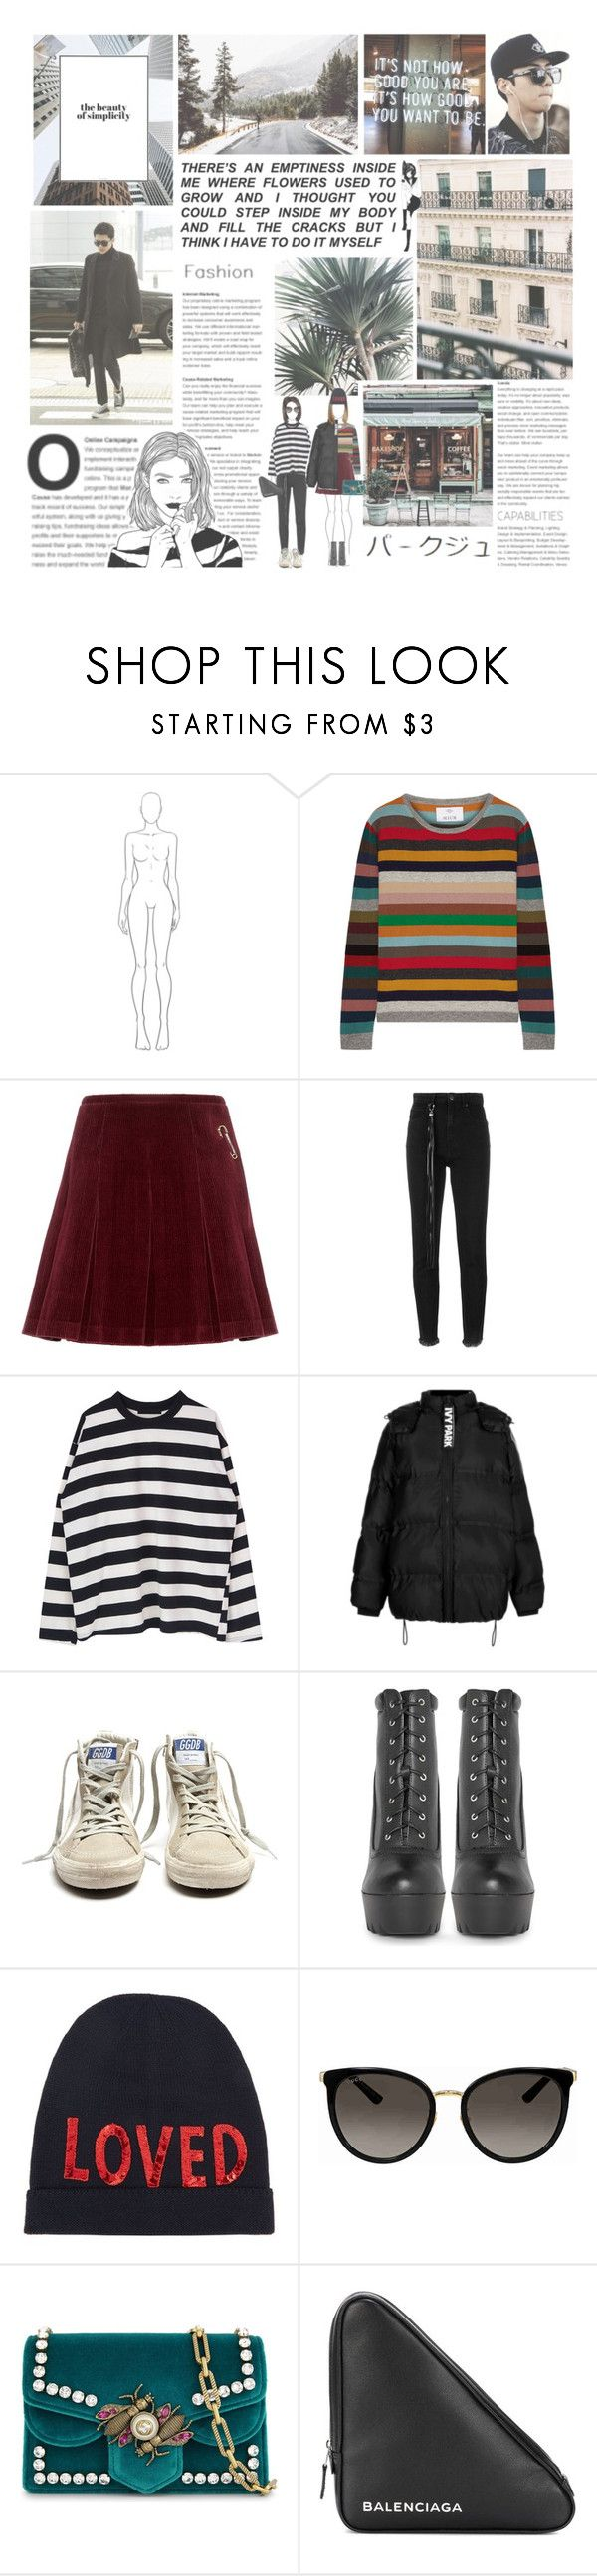 """dusk till dawn"" by luhansolo ❤ liked on Polyvore featuring Coffee Shop, Allude, Shrimps, Golden Goose, Topshop, Gucci and Balenciaga"